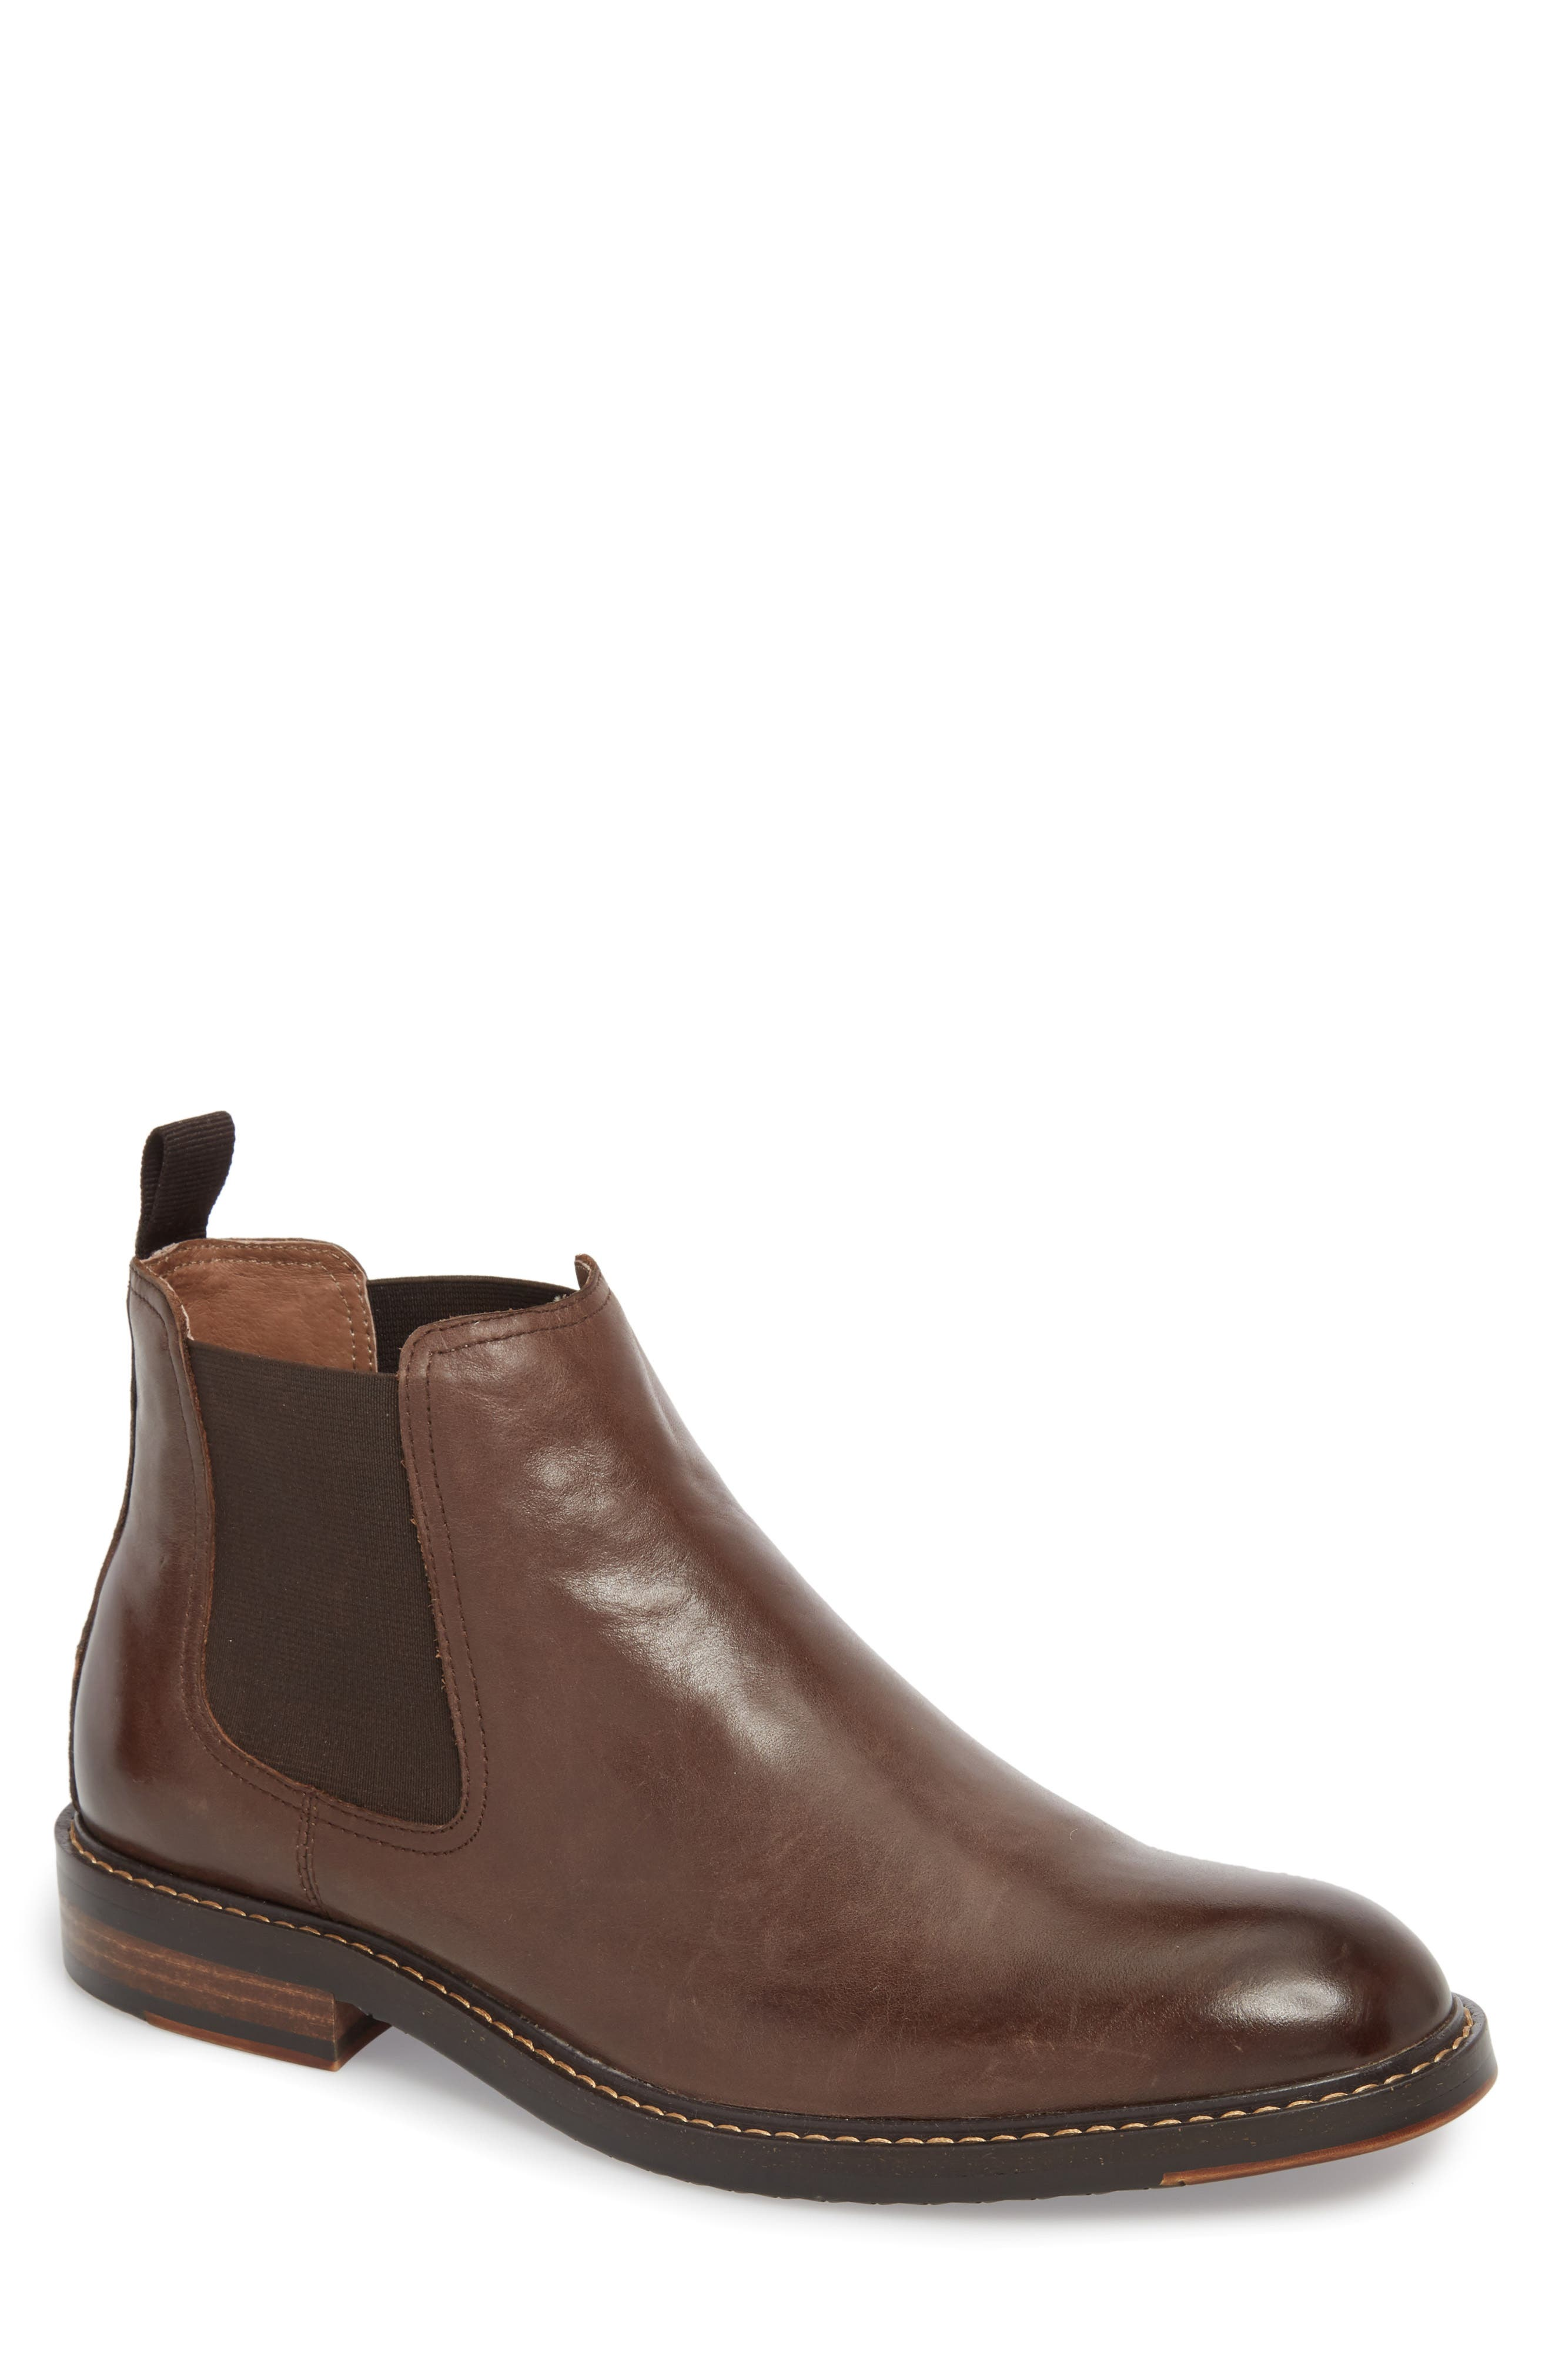 Brooks Chelsea Boot,                             Main thumbnail 1, color,                             BROWN LEATHER